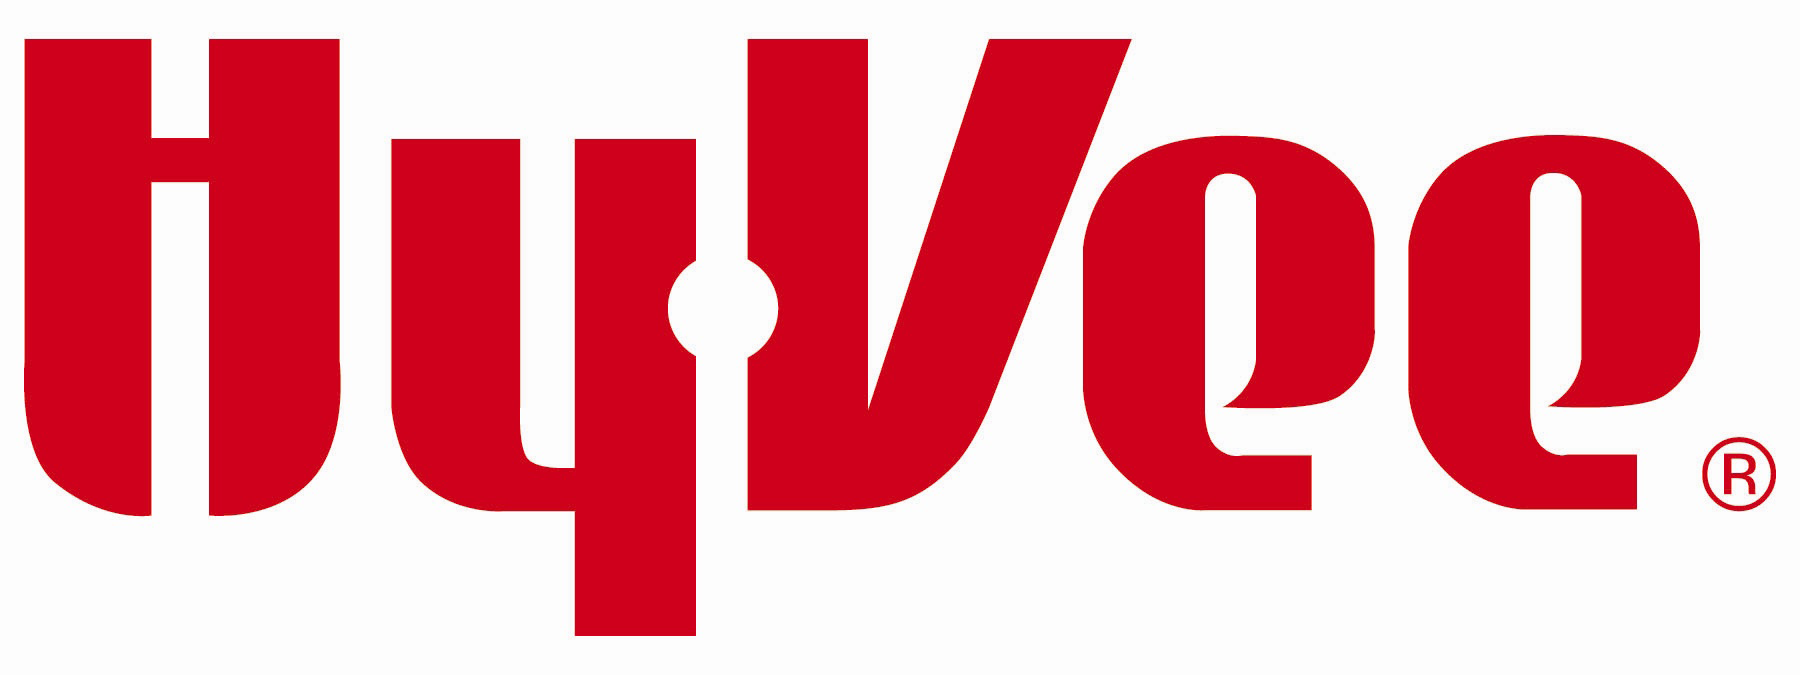 Hy Vee (Red Letter).png